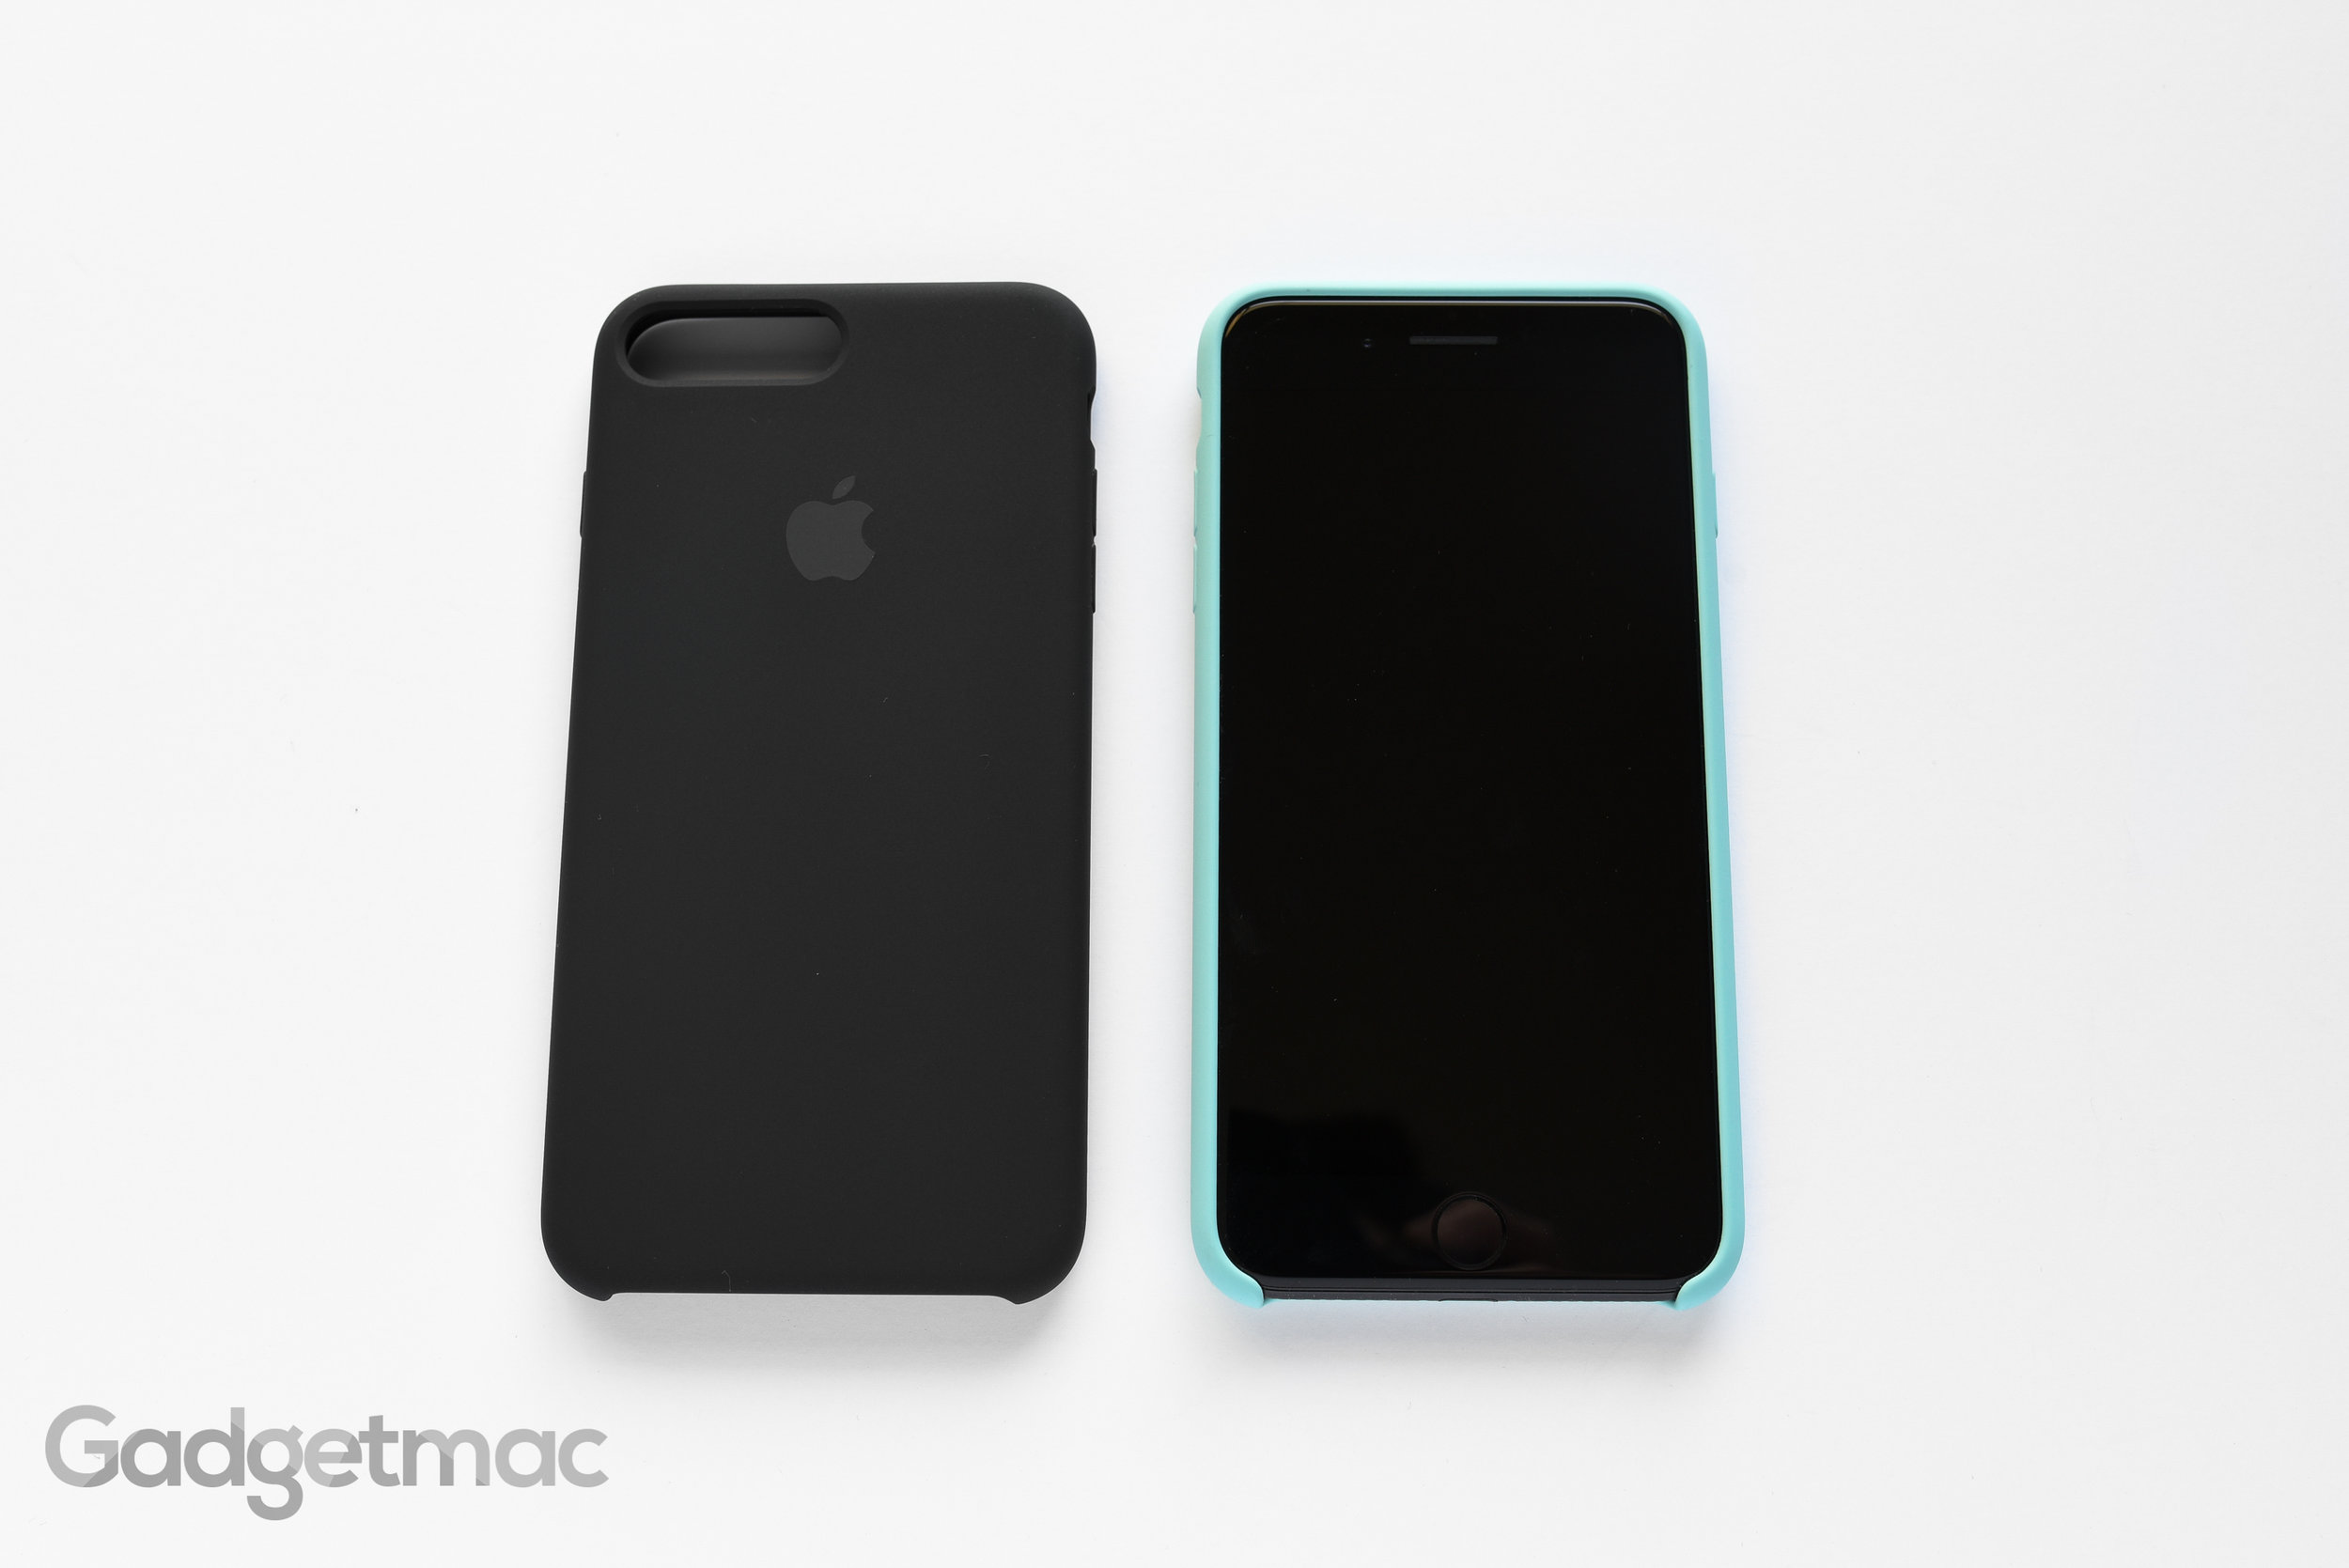 apple-iphone-7-plus-silicone-case-front.jpg